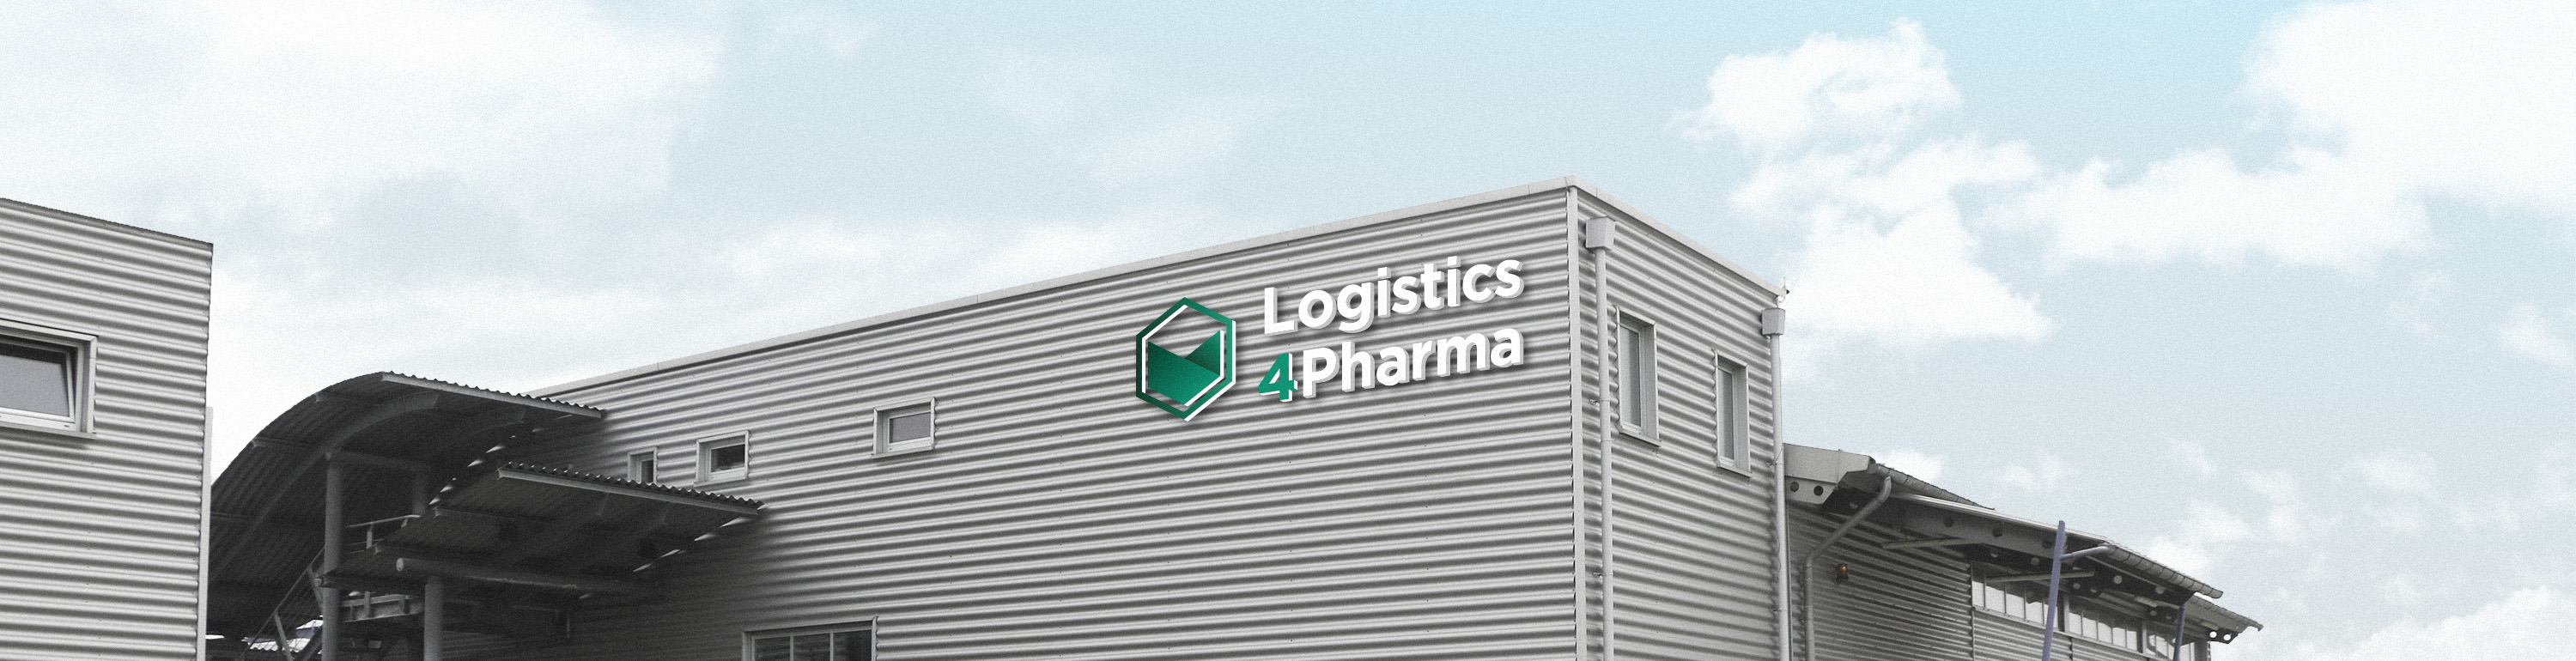 Logistics 4 Pharma - Home - Company; Logistics 4 Pharma building